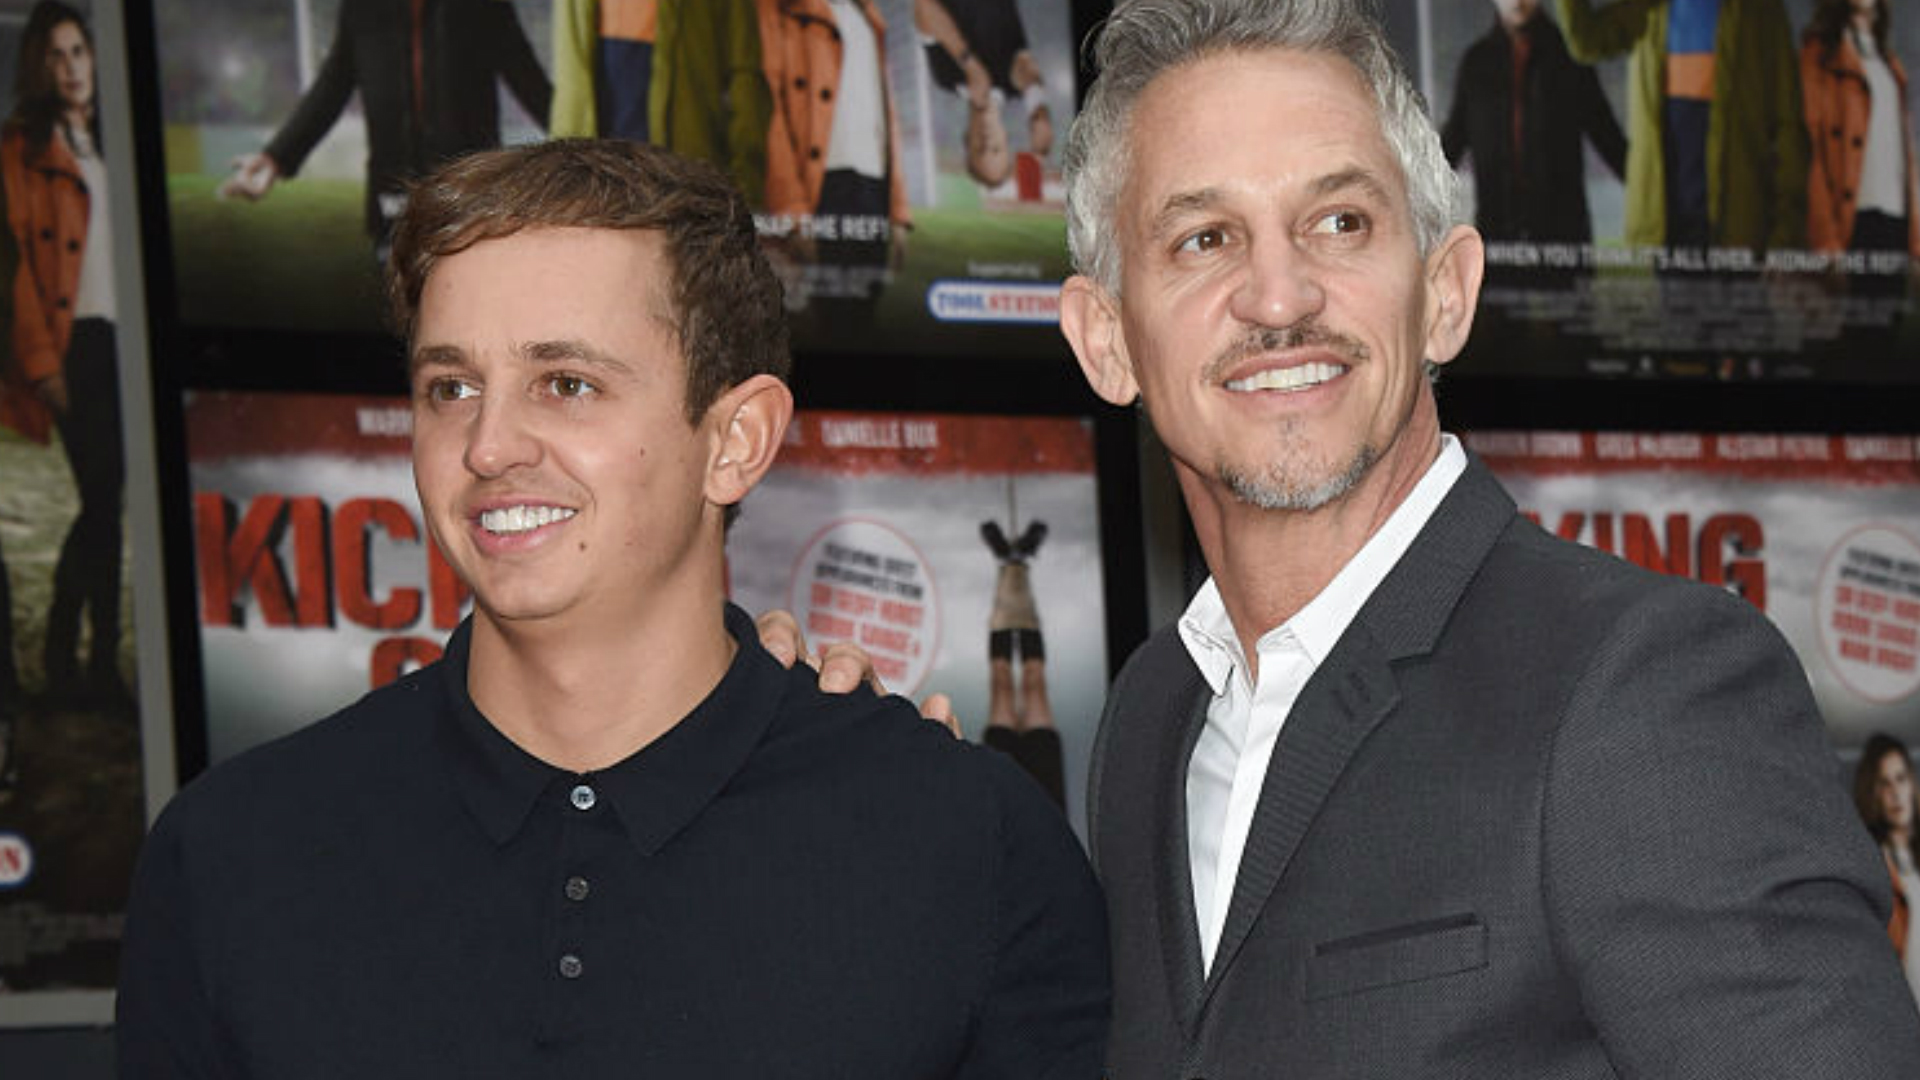 Gary and George Lineker